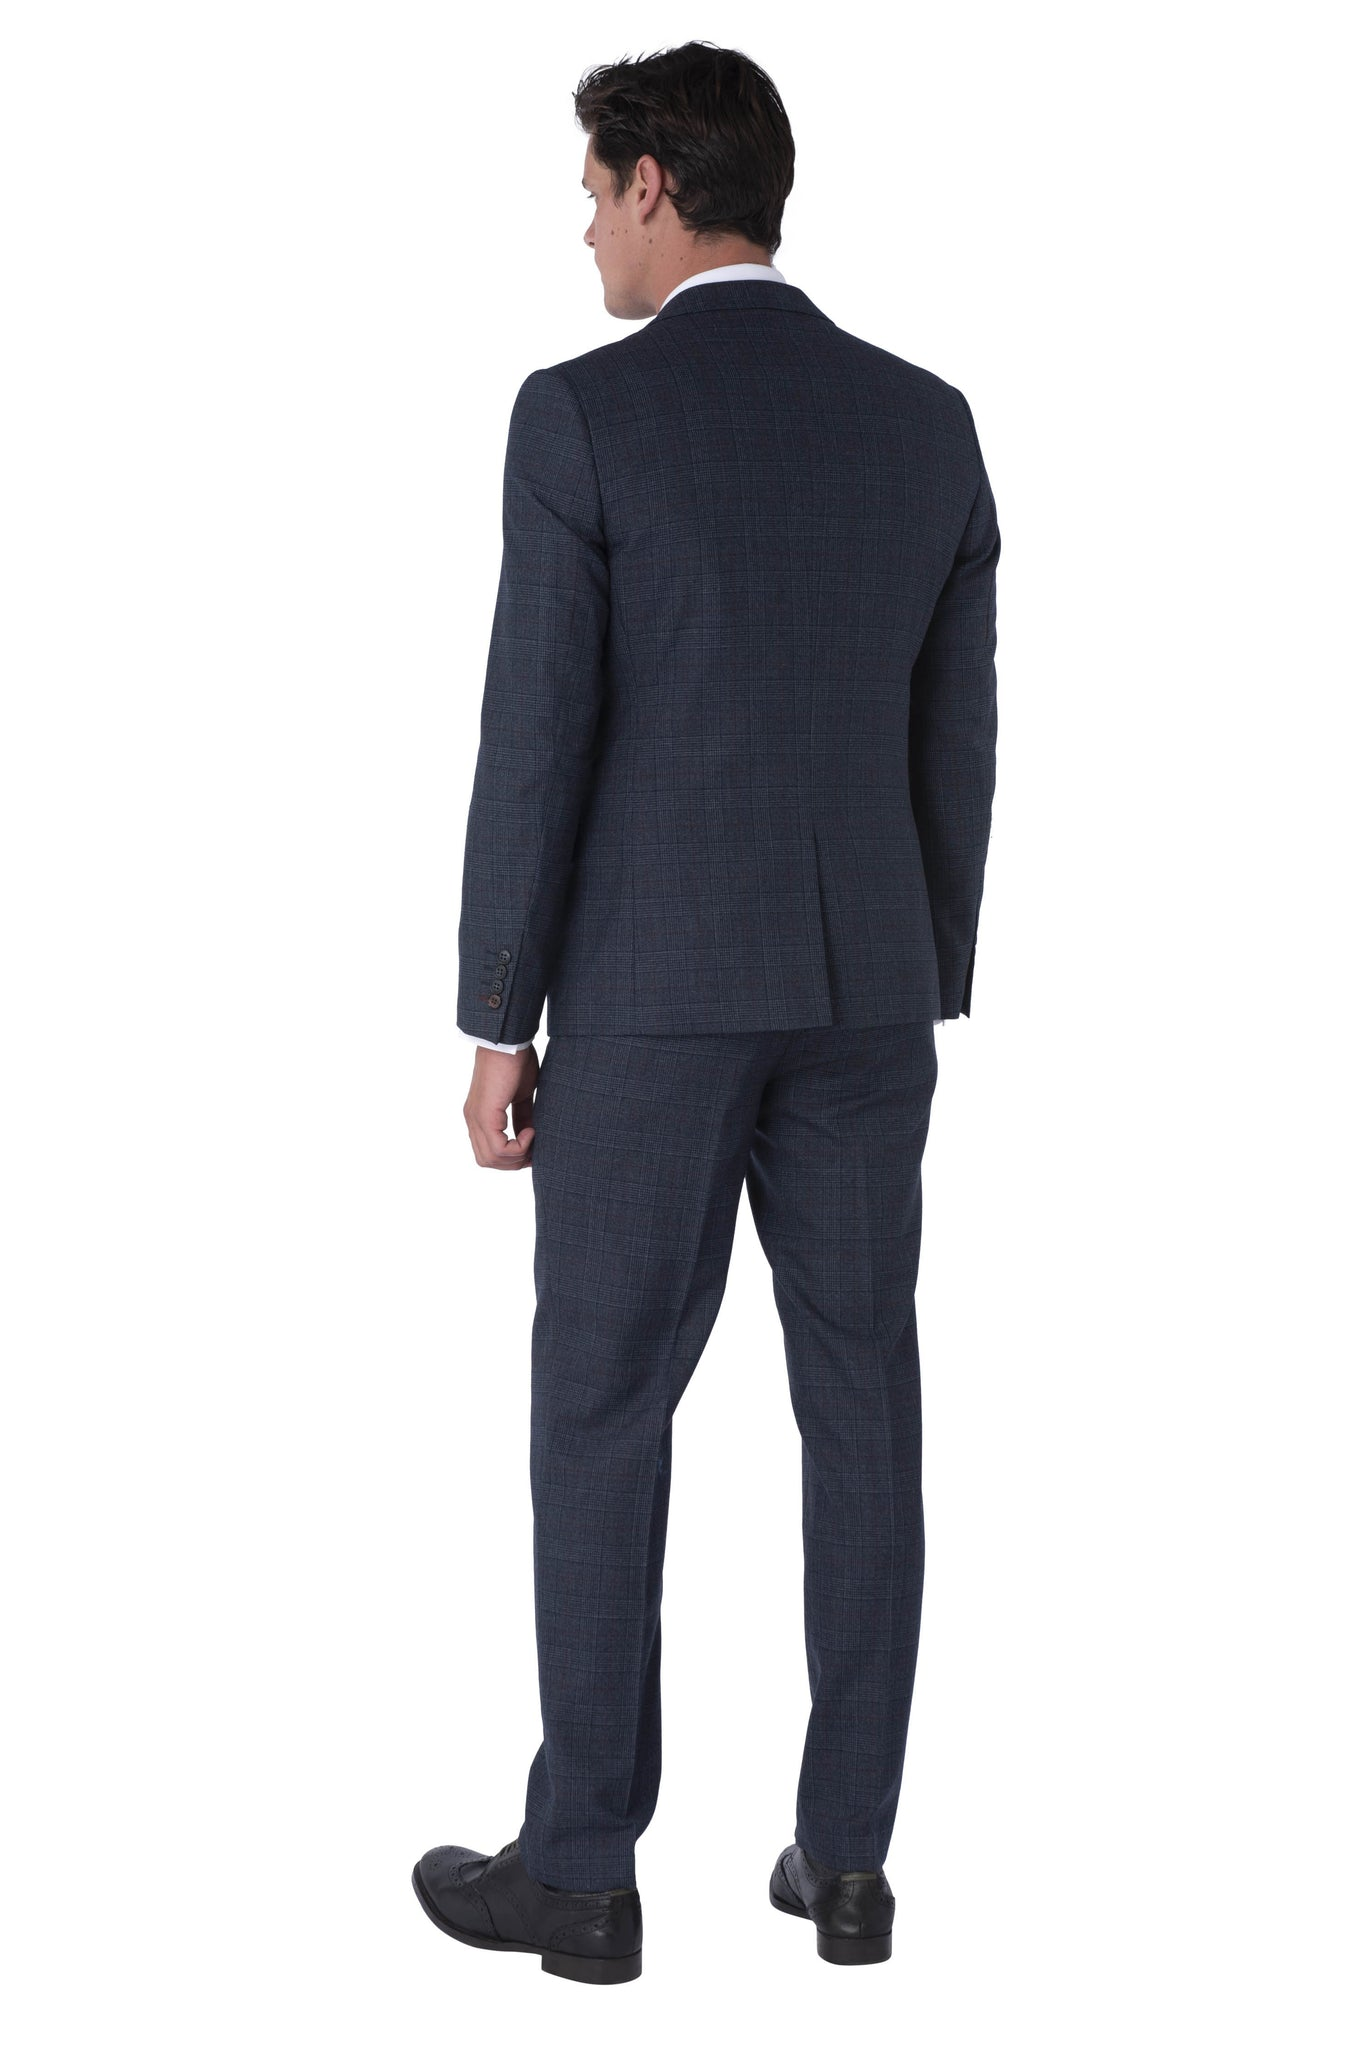 Back of FINN Blue Check 100% Wool Three Piece Suit